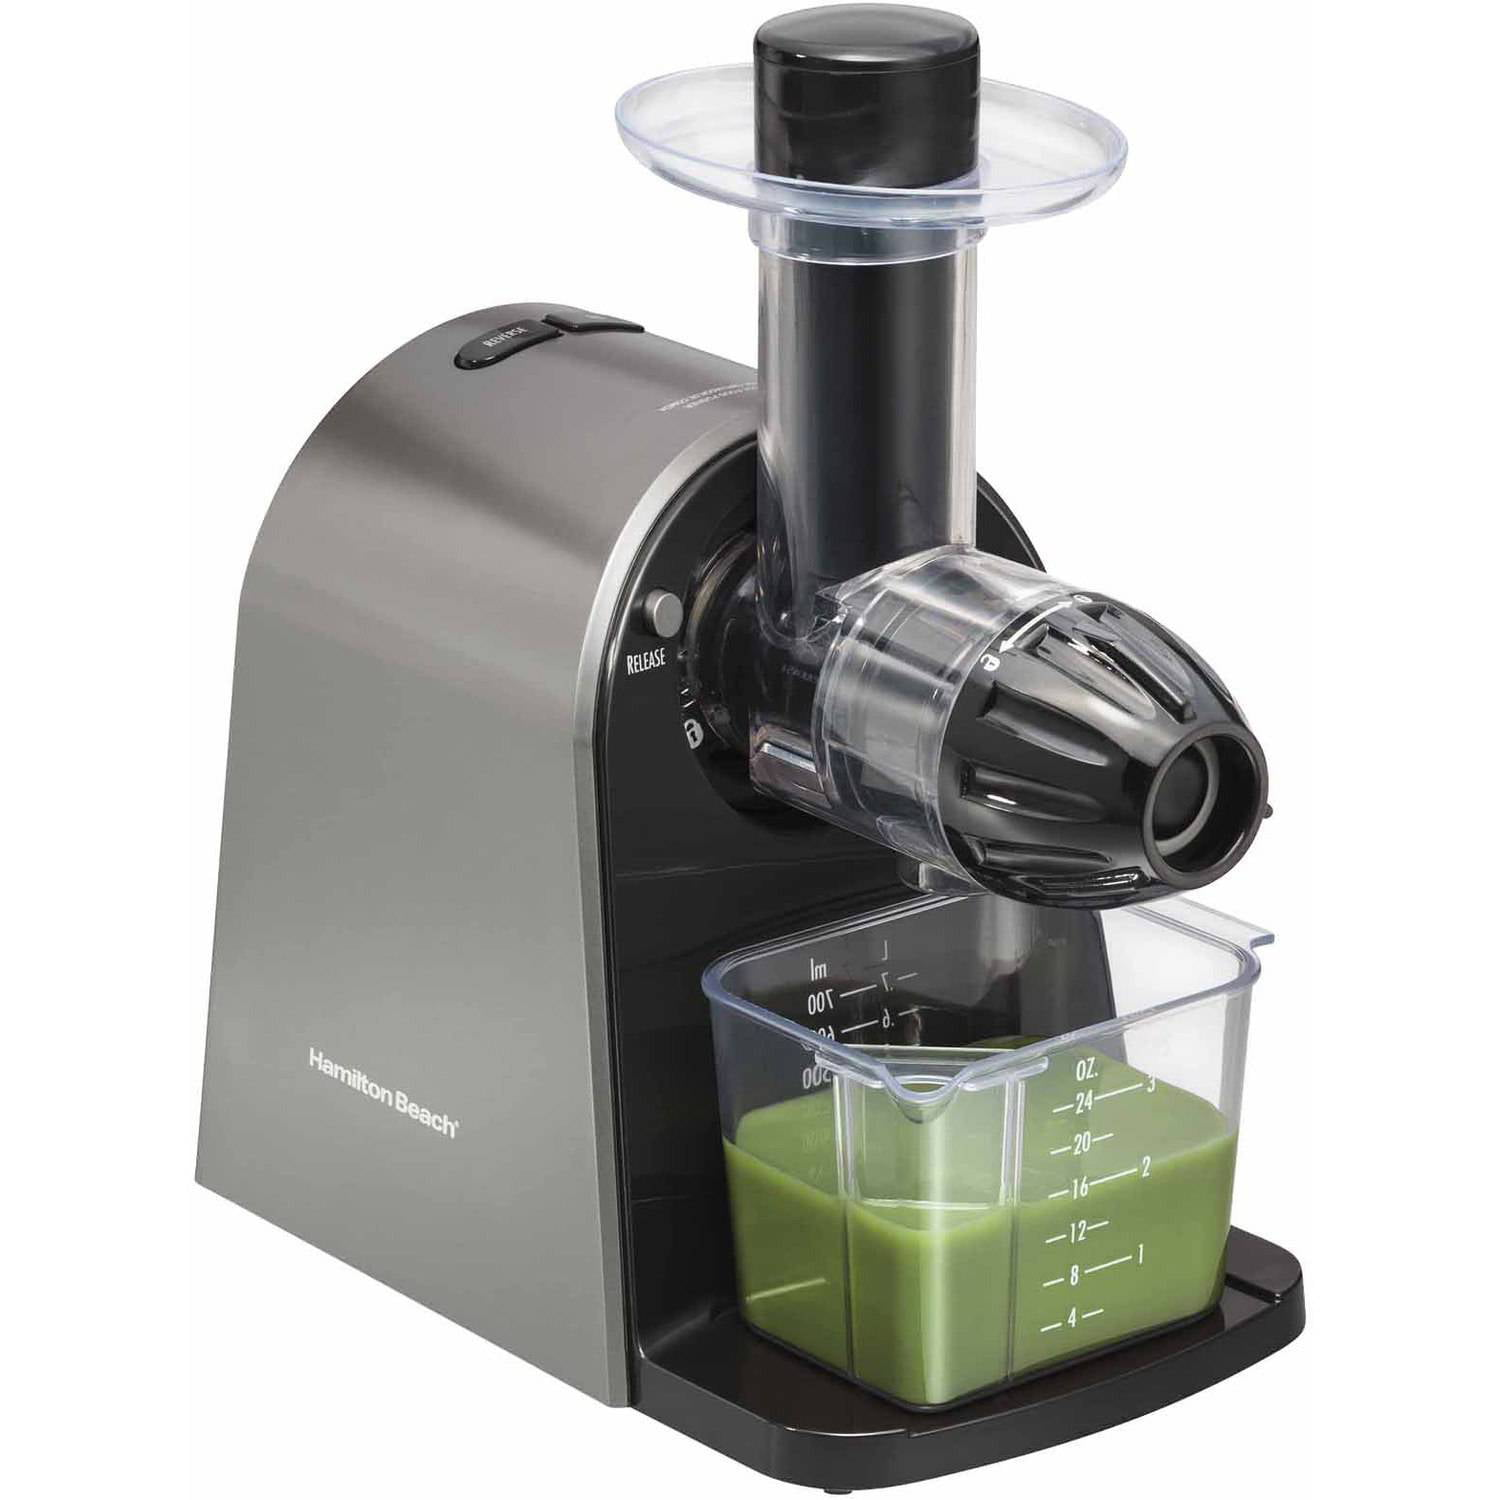 Best Rpm For Slow Juicer : Cold Press Juicer Machine - Masticating Juicer Slow Juice Extractor Maker Electric Juicing ...